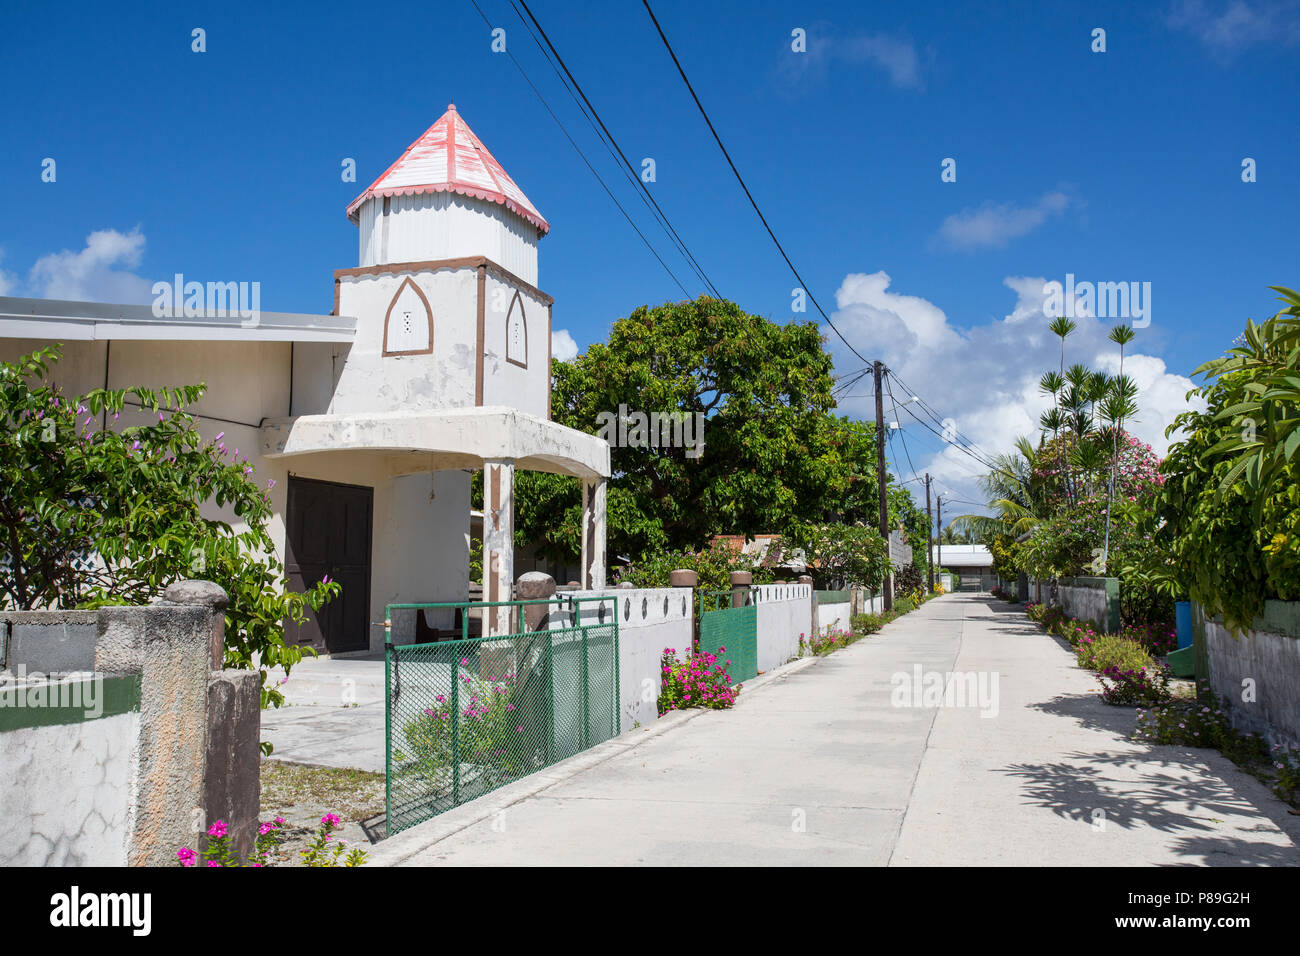 Church and Street on Manihi, Tuamotus - Stock Image